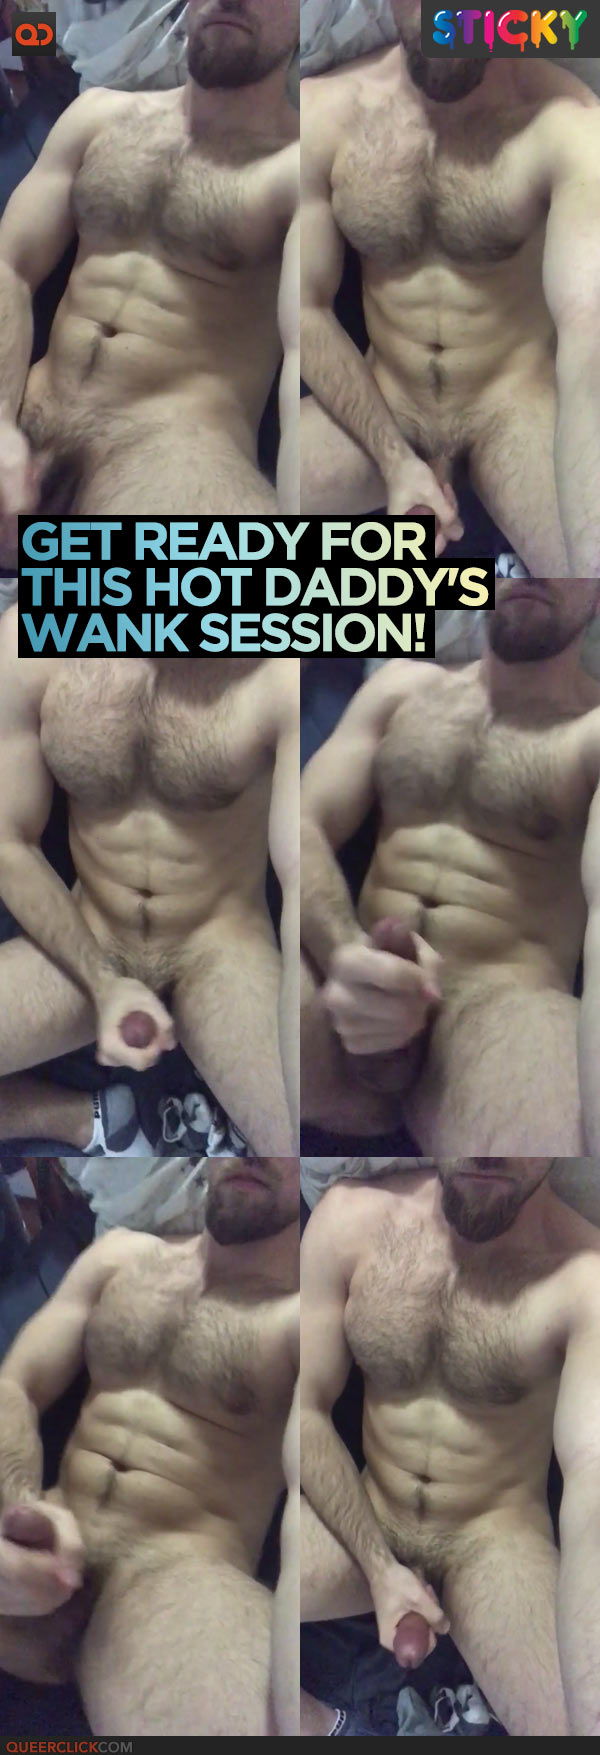 Get Ready For This Hot Daddy's Wank Session!